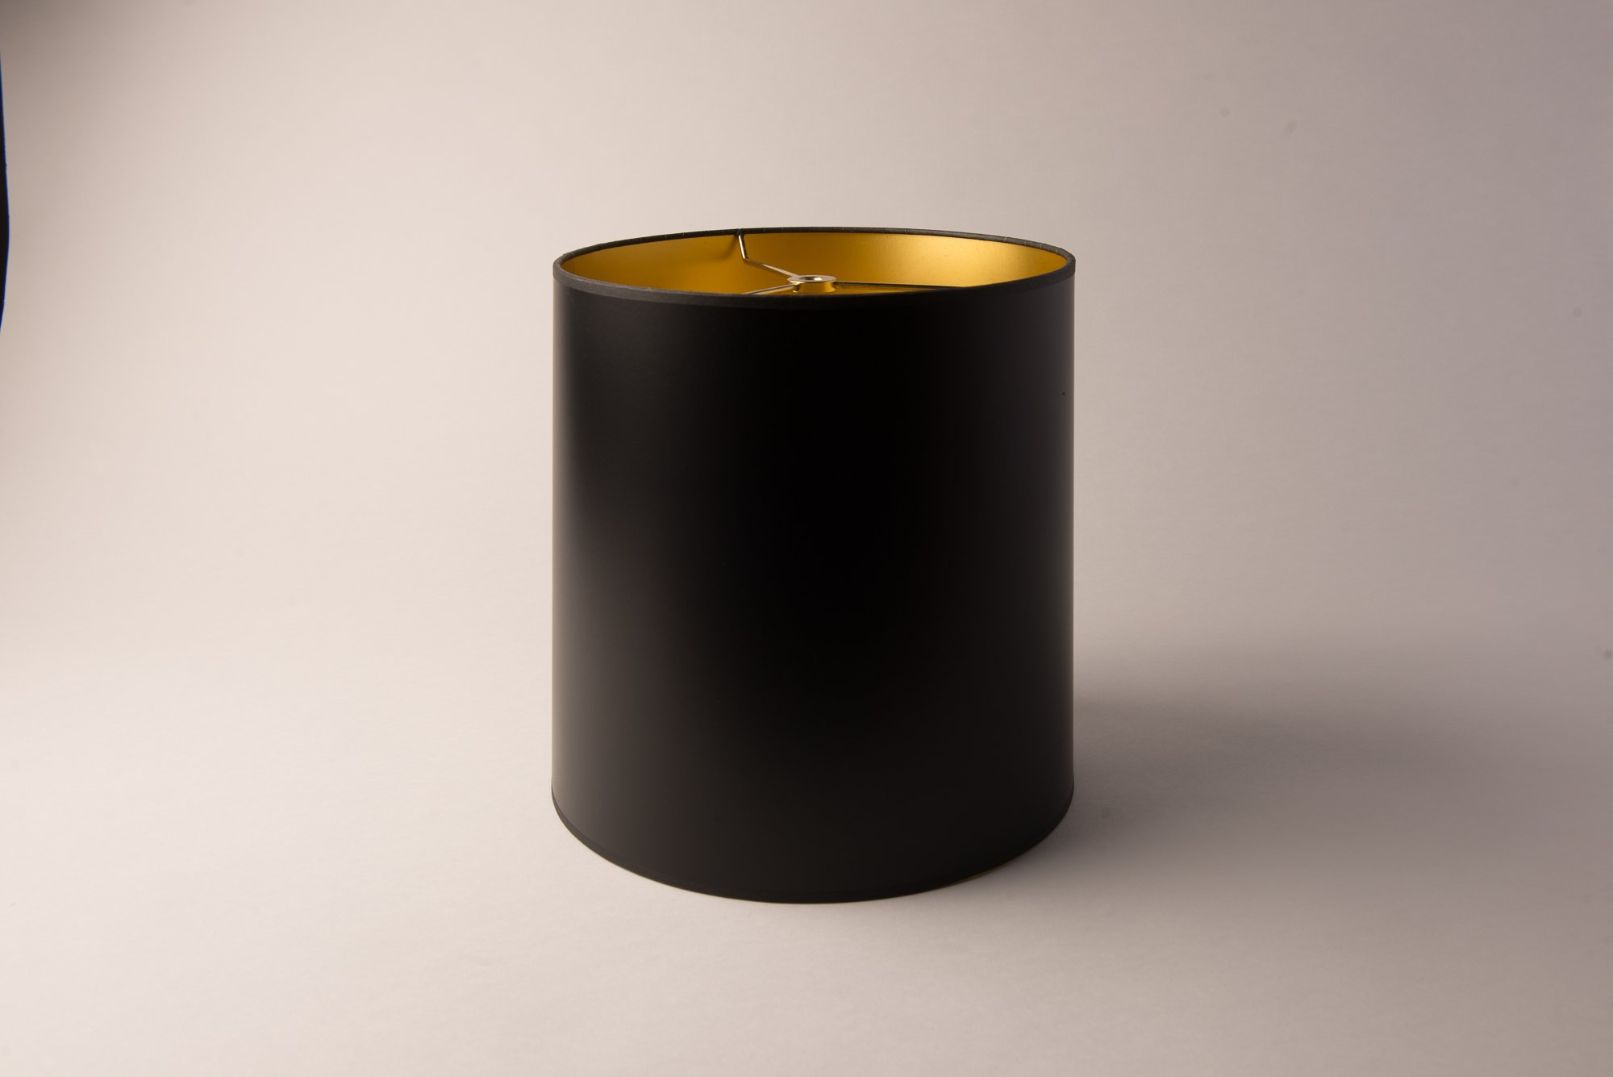 https://www.hotel-lamps.com/resources/assets/images/product_images/tall_drum_blk_gld_paper_1039.jpg